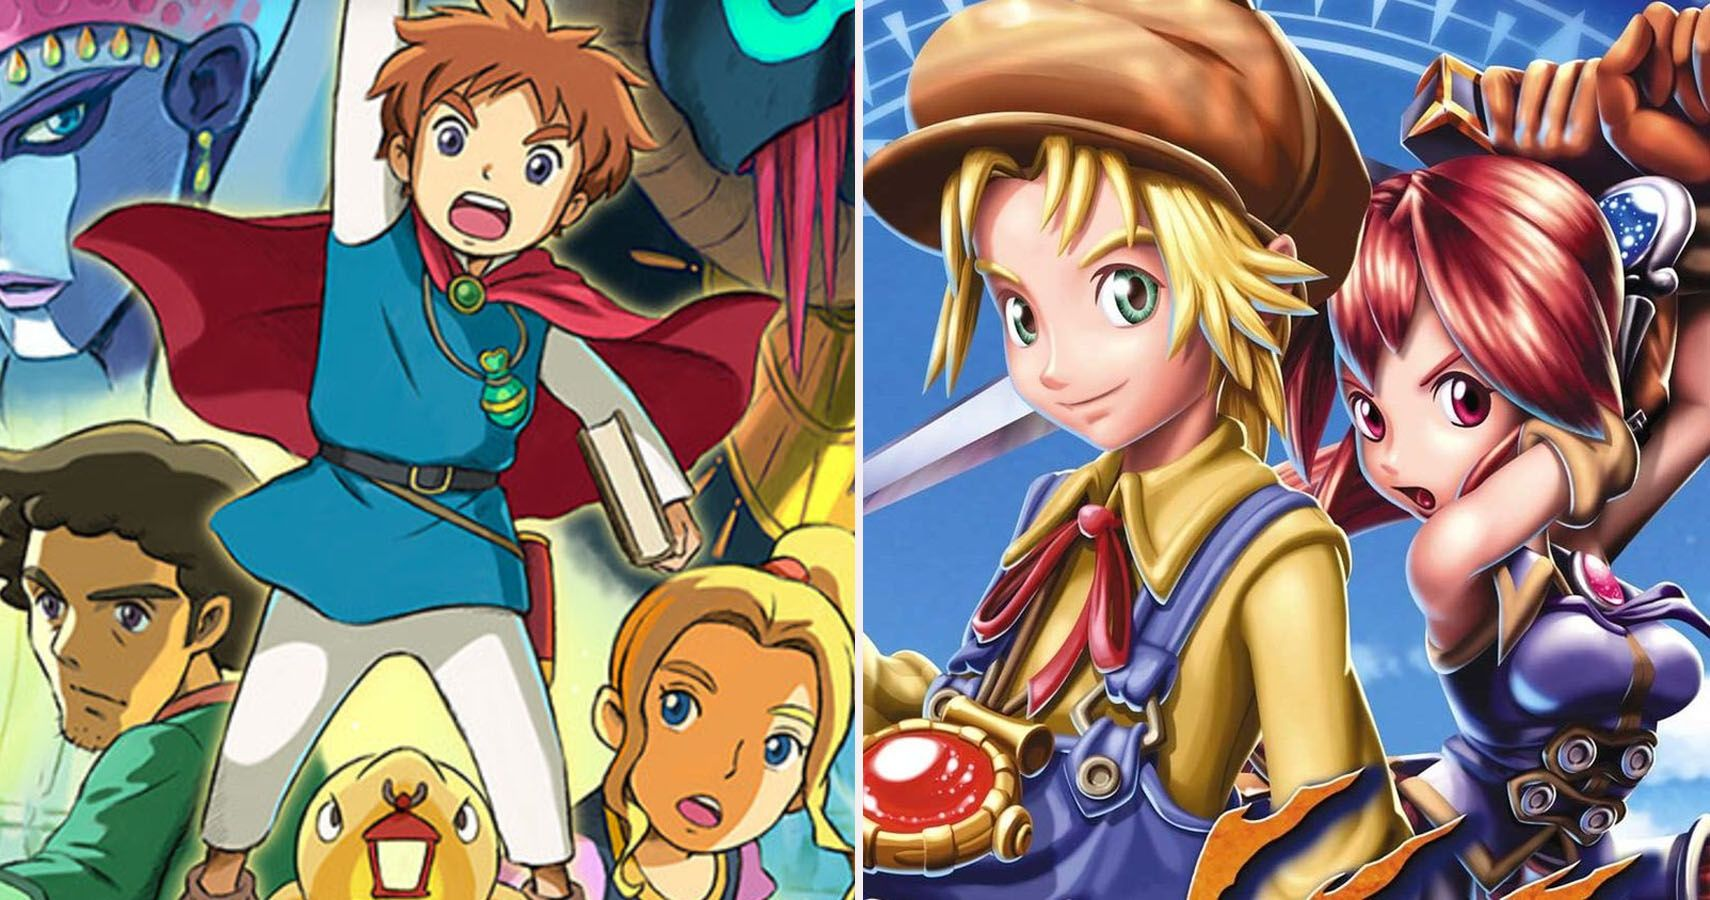 The 10 Best Level-5 Games, Ranked (According To Metacritic)